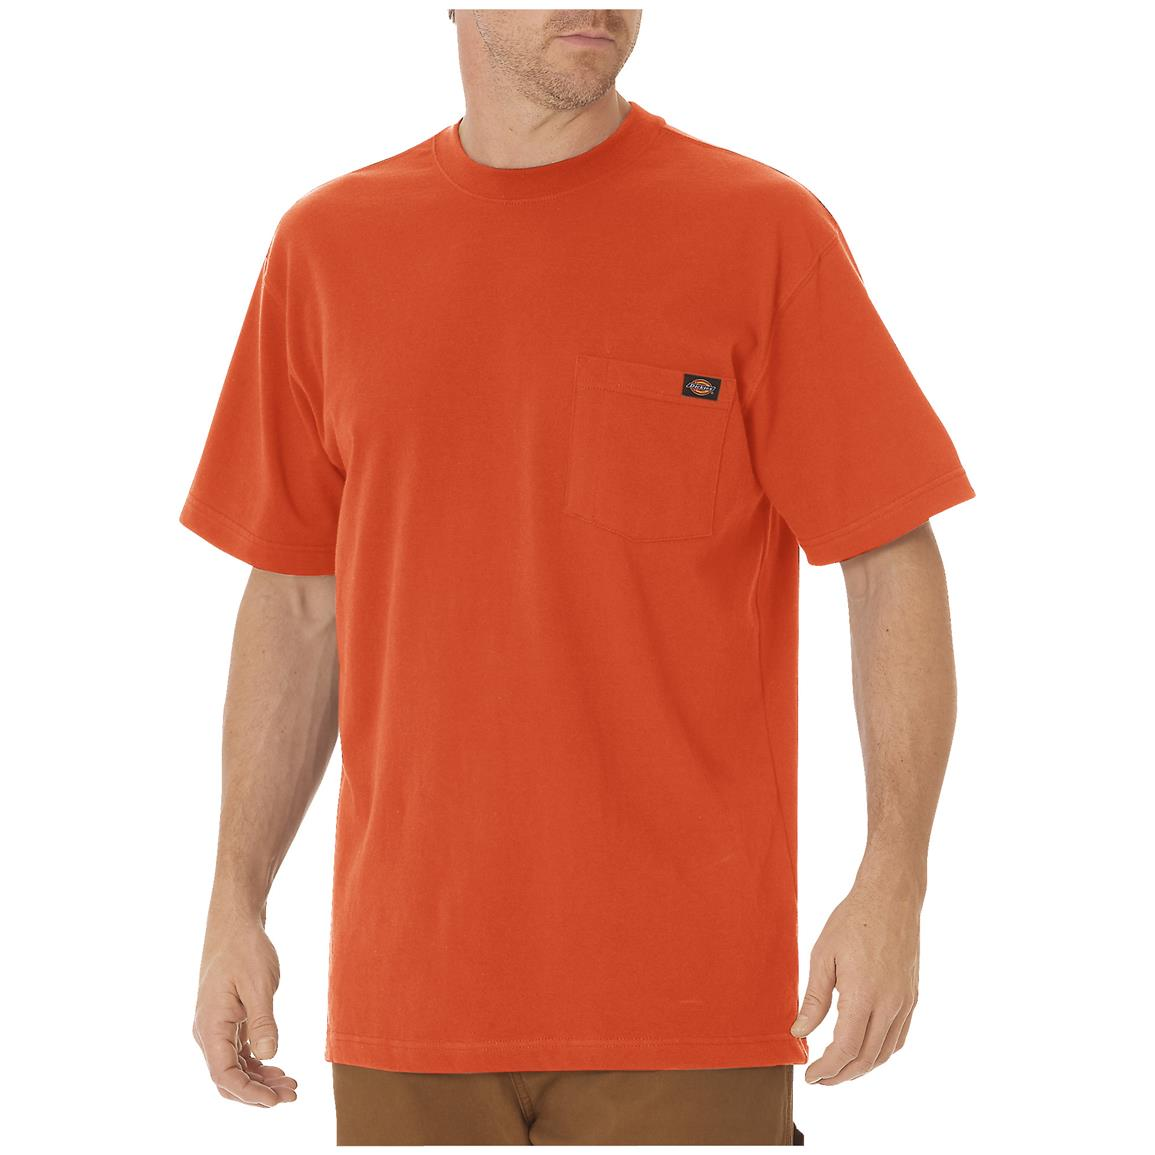 Dickies® Short-sleeved Heavyweight Crew Neck T-shirt, Orange